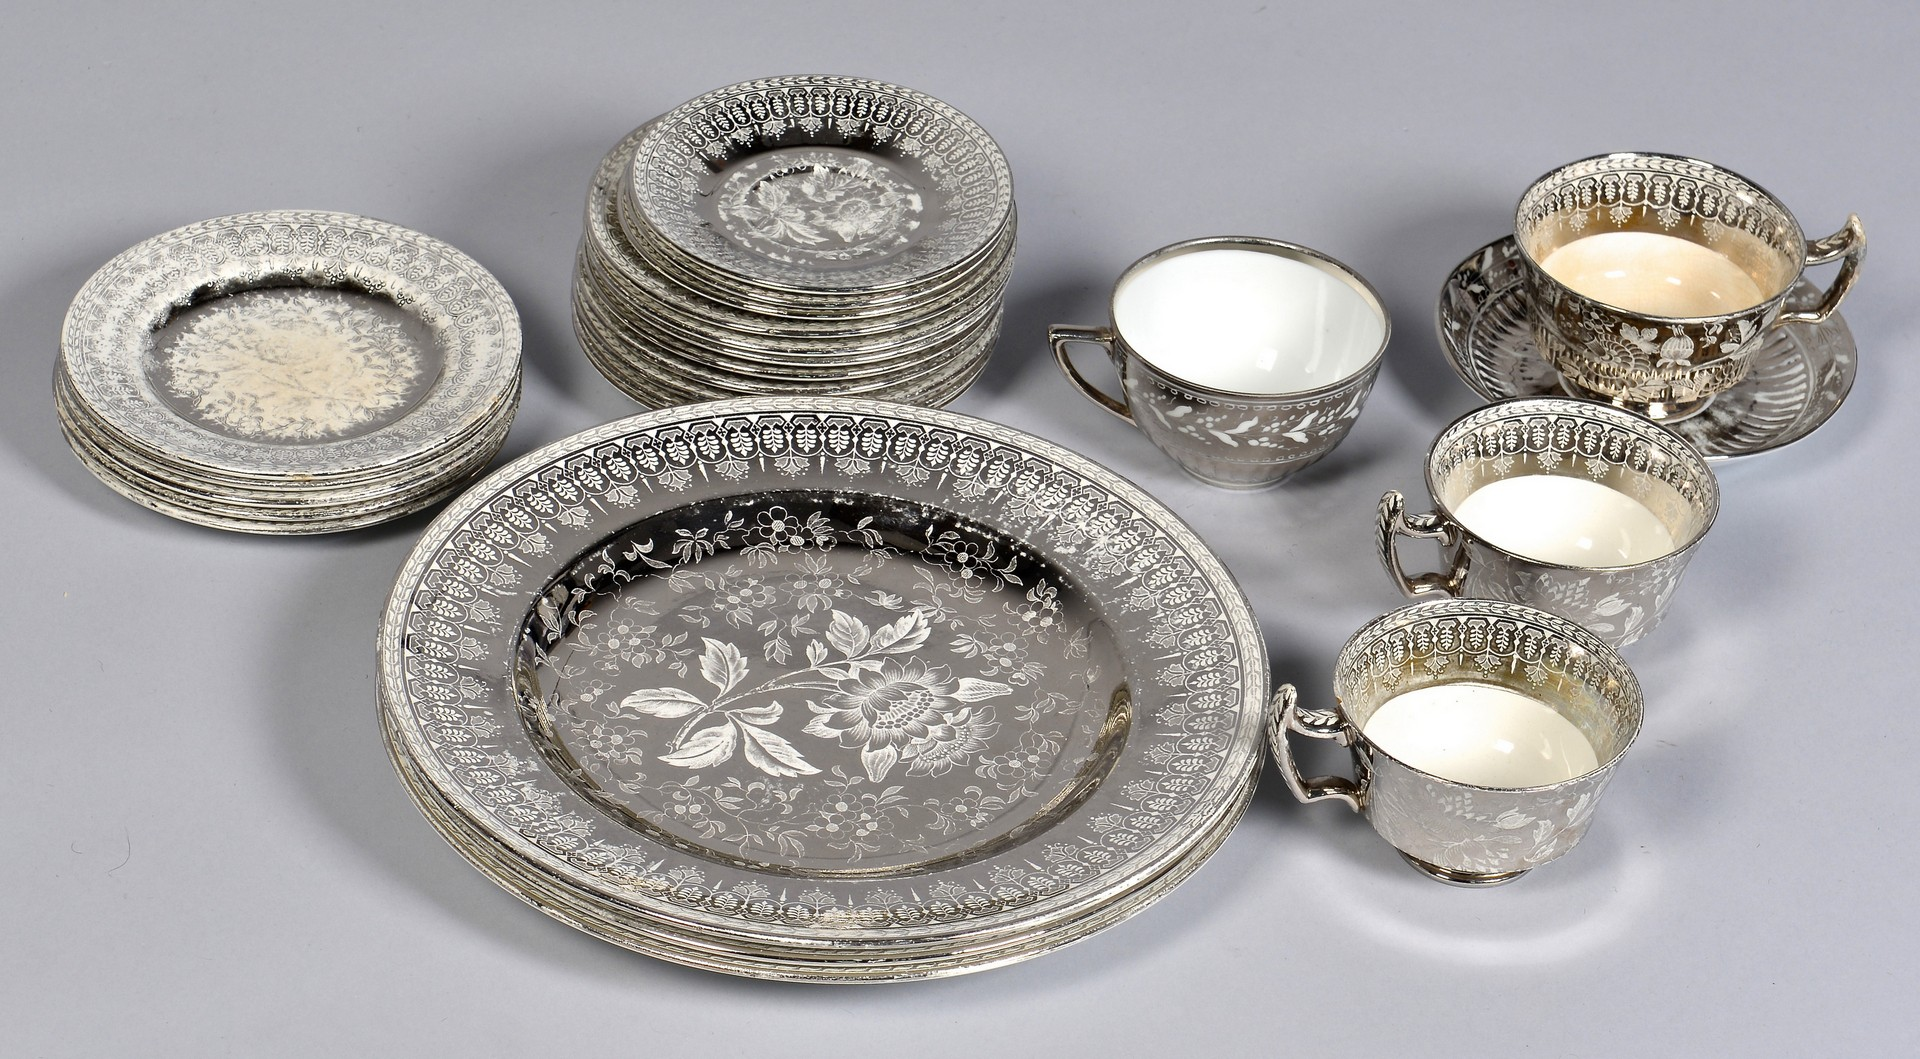 Lot 729: Wedgwood Etruria Silver Luster Dinner Ware